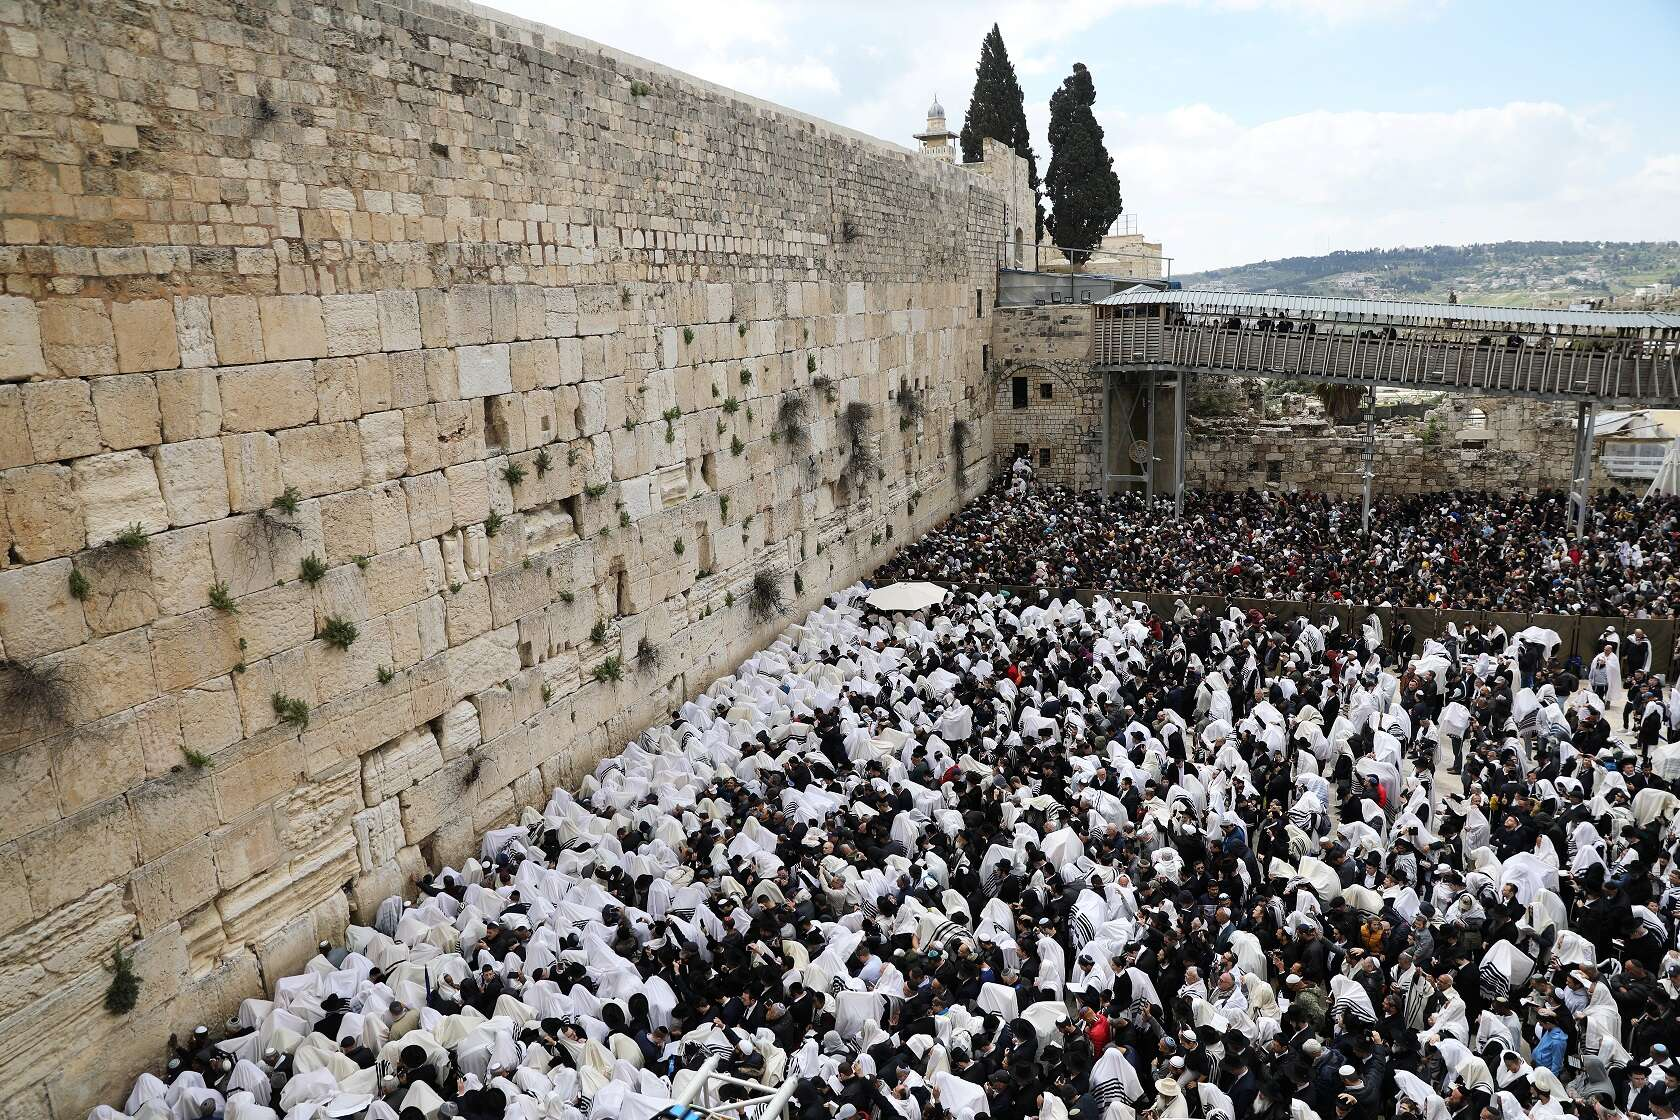 Thousands Gather At Western Wall For Passover Priestly Blessing